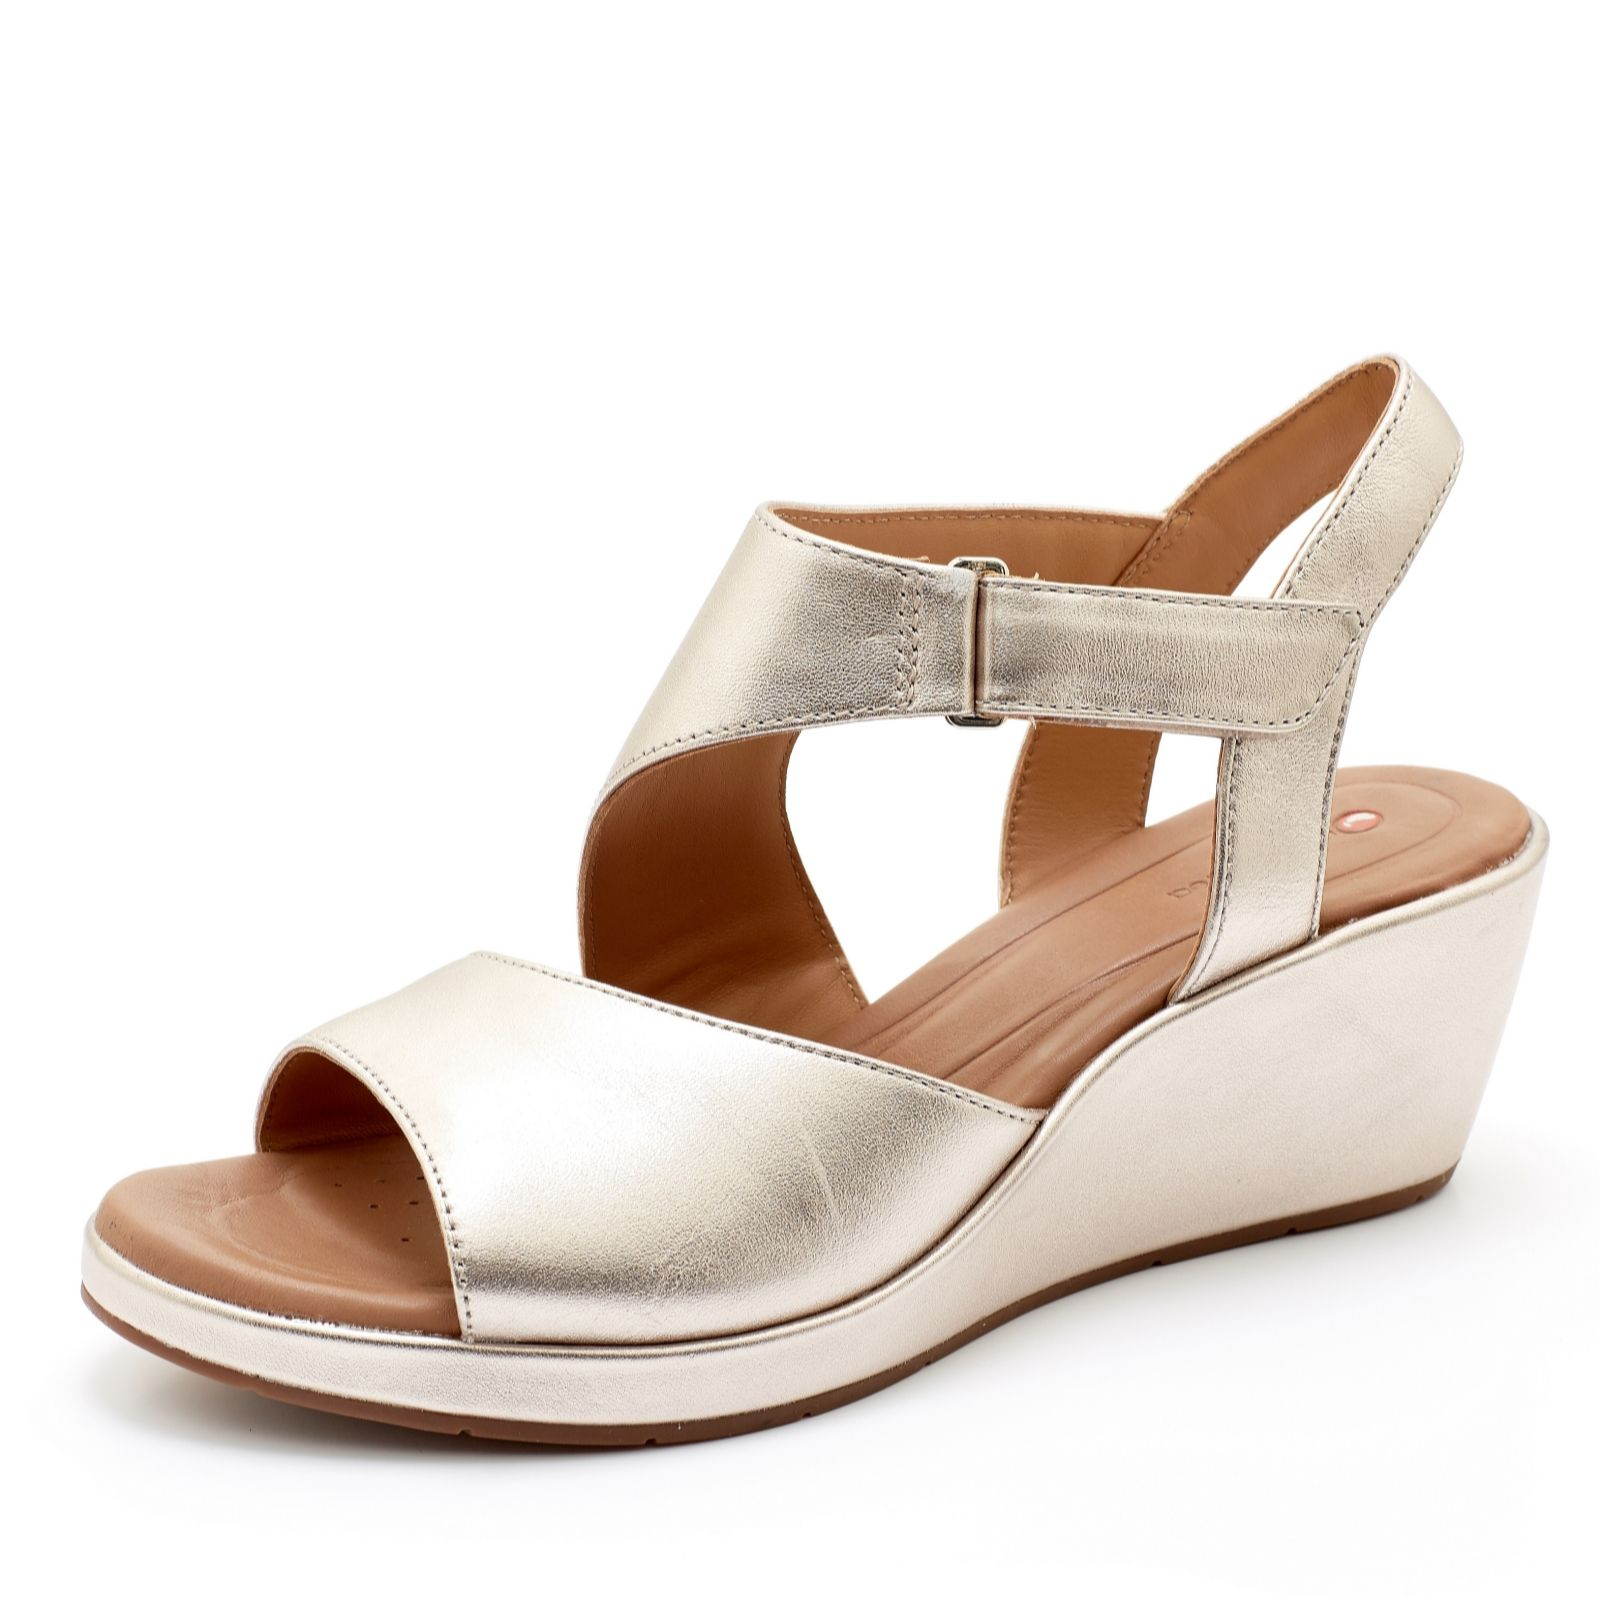 885ba62f8 Clarks Un Plaza Cross Slingback Sandal Standard Fit - QVC UK